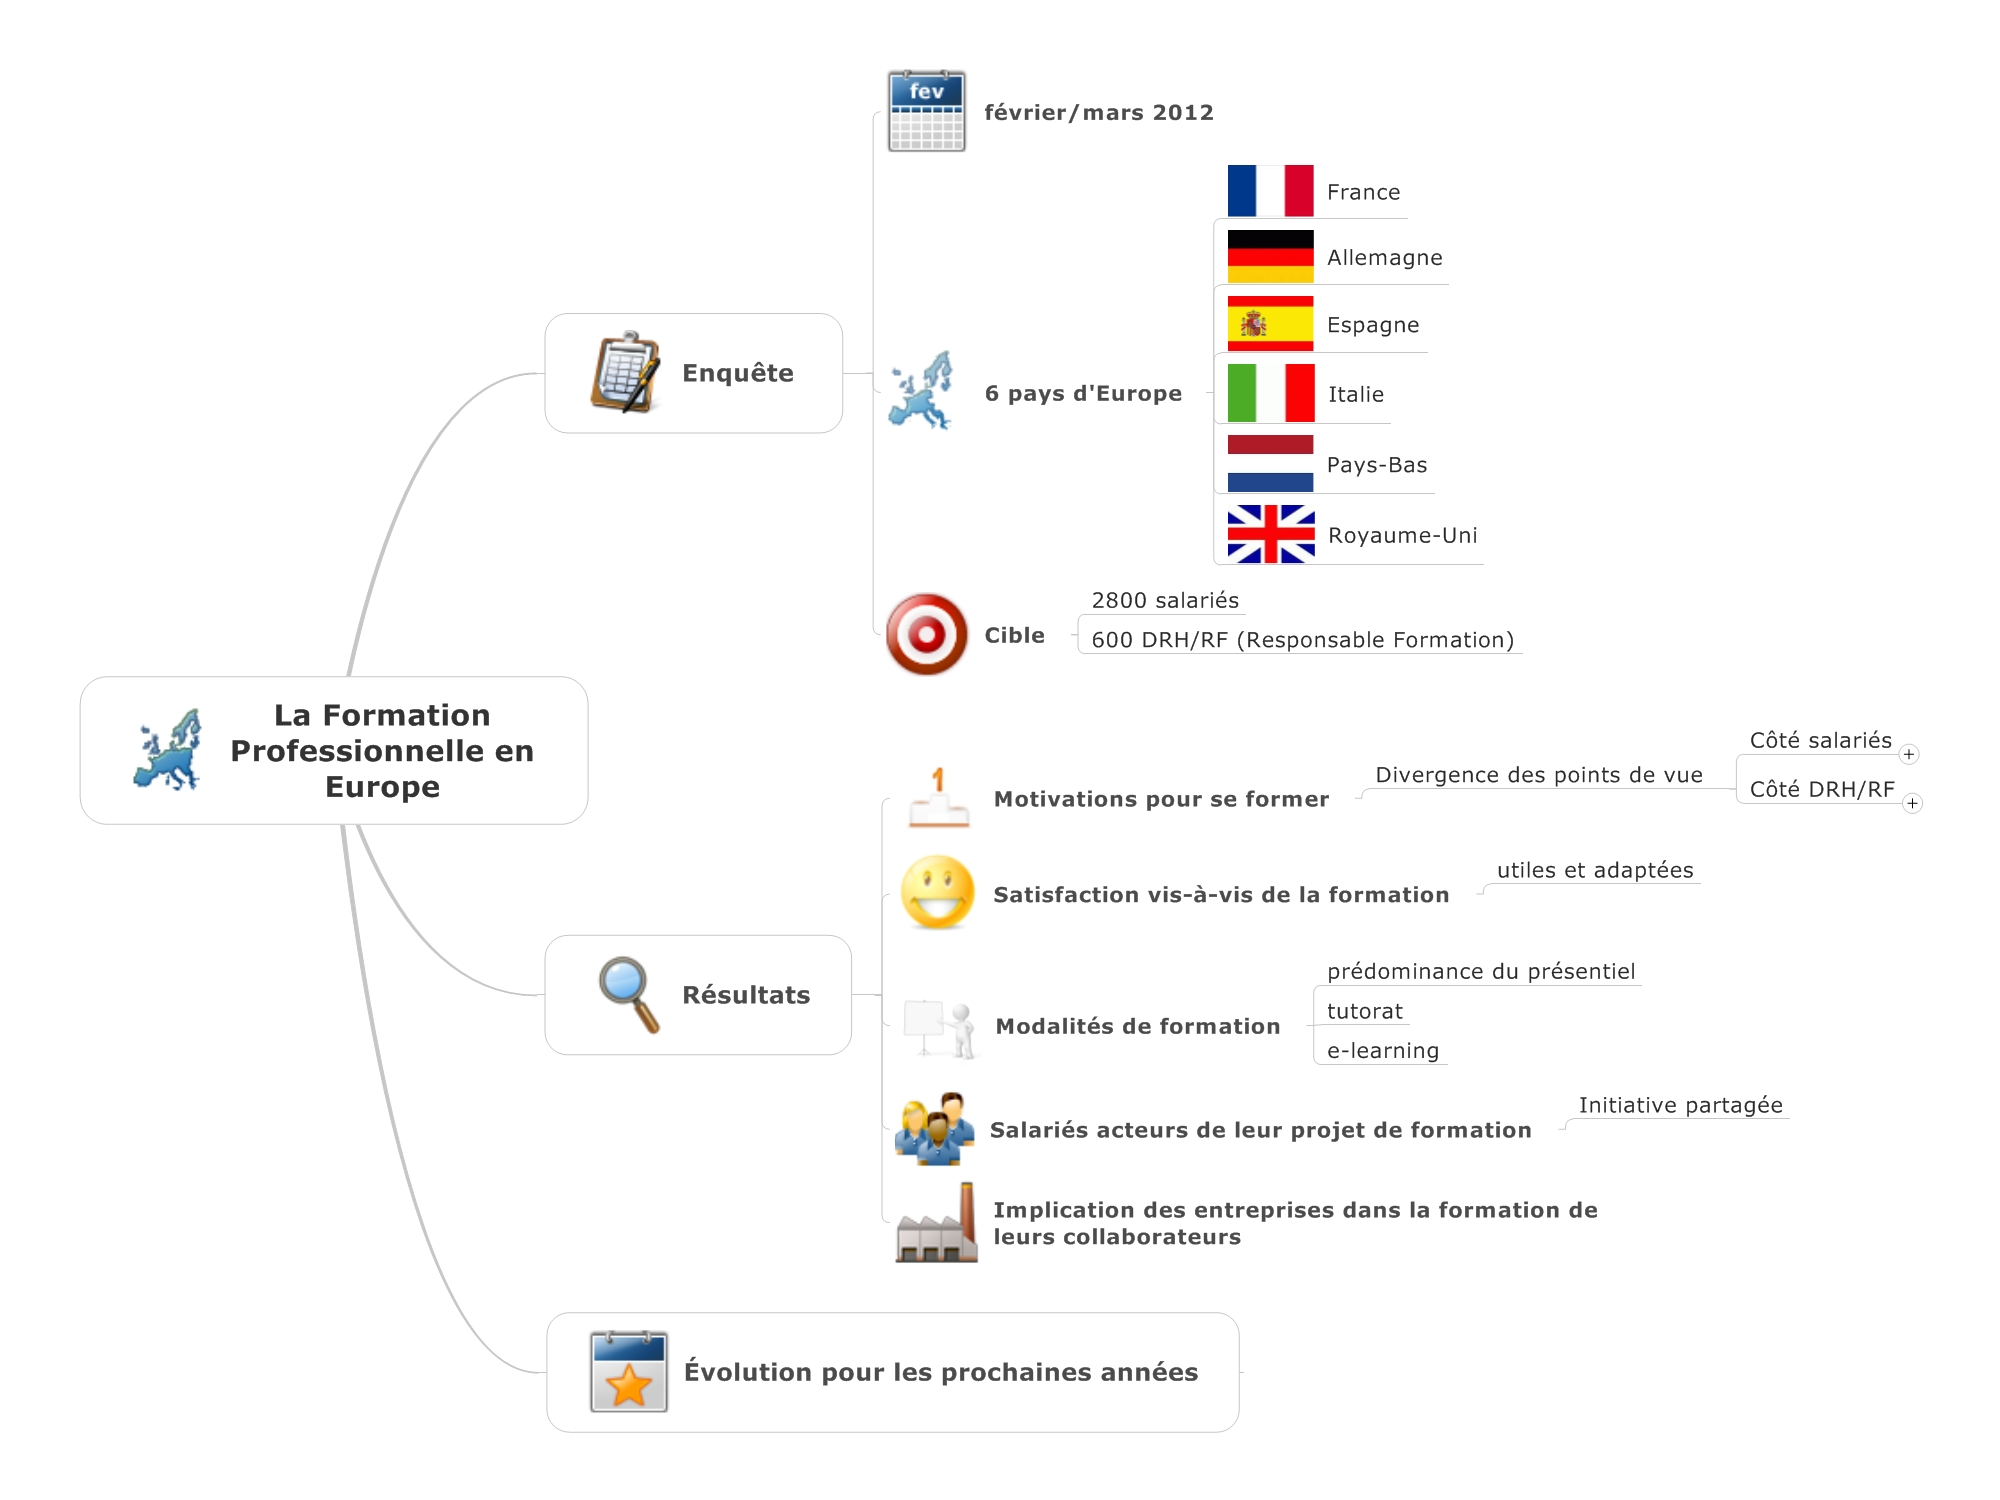 La formation professionnelle en Europe